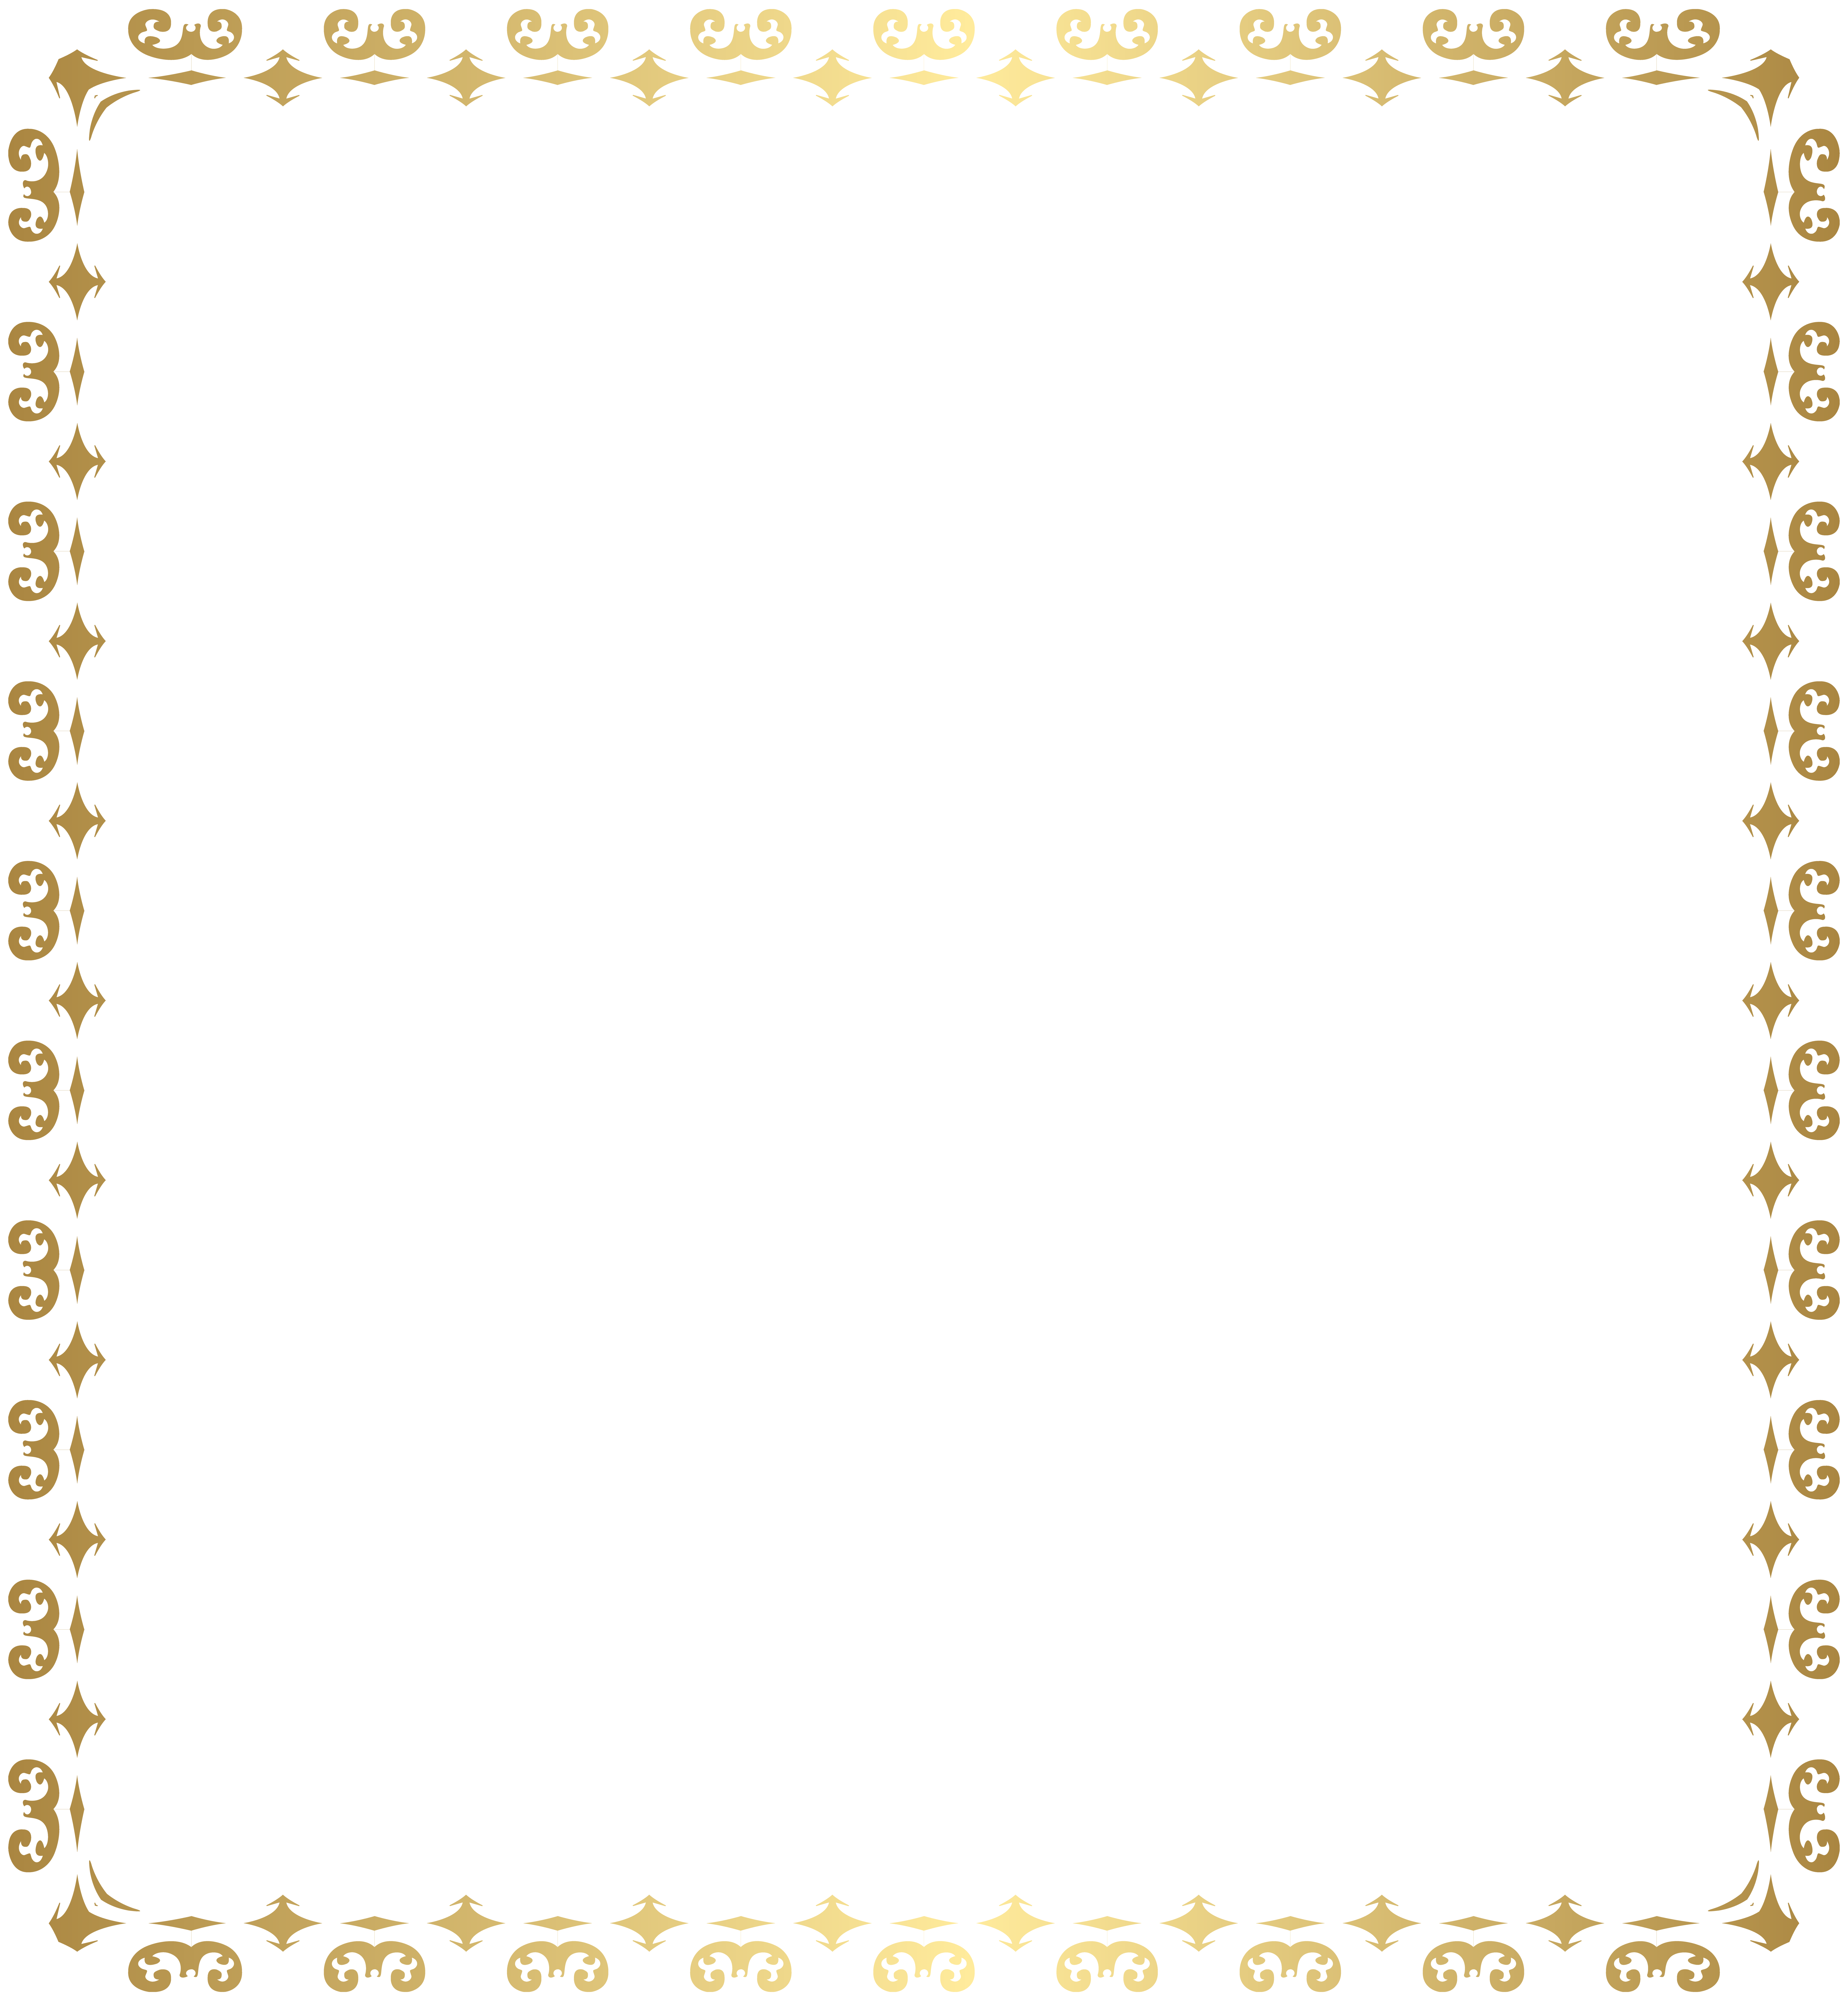 Frame Transparent Clipart.